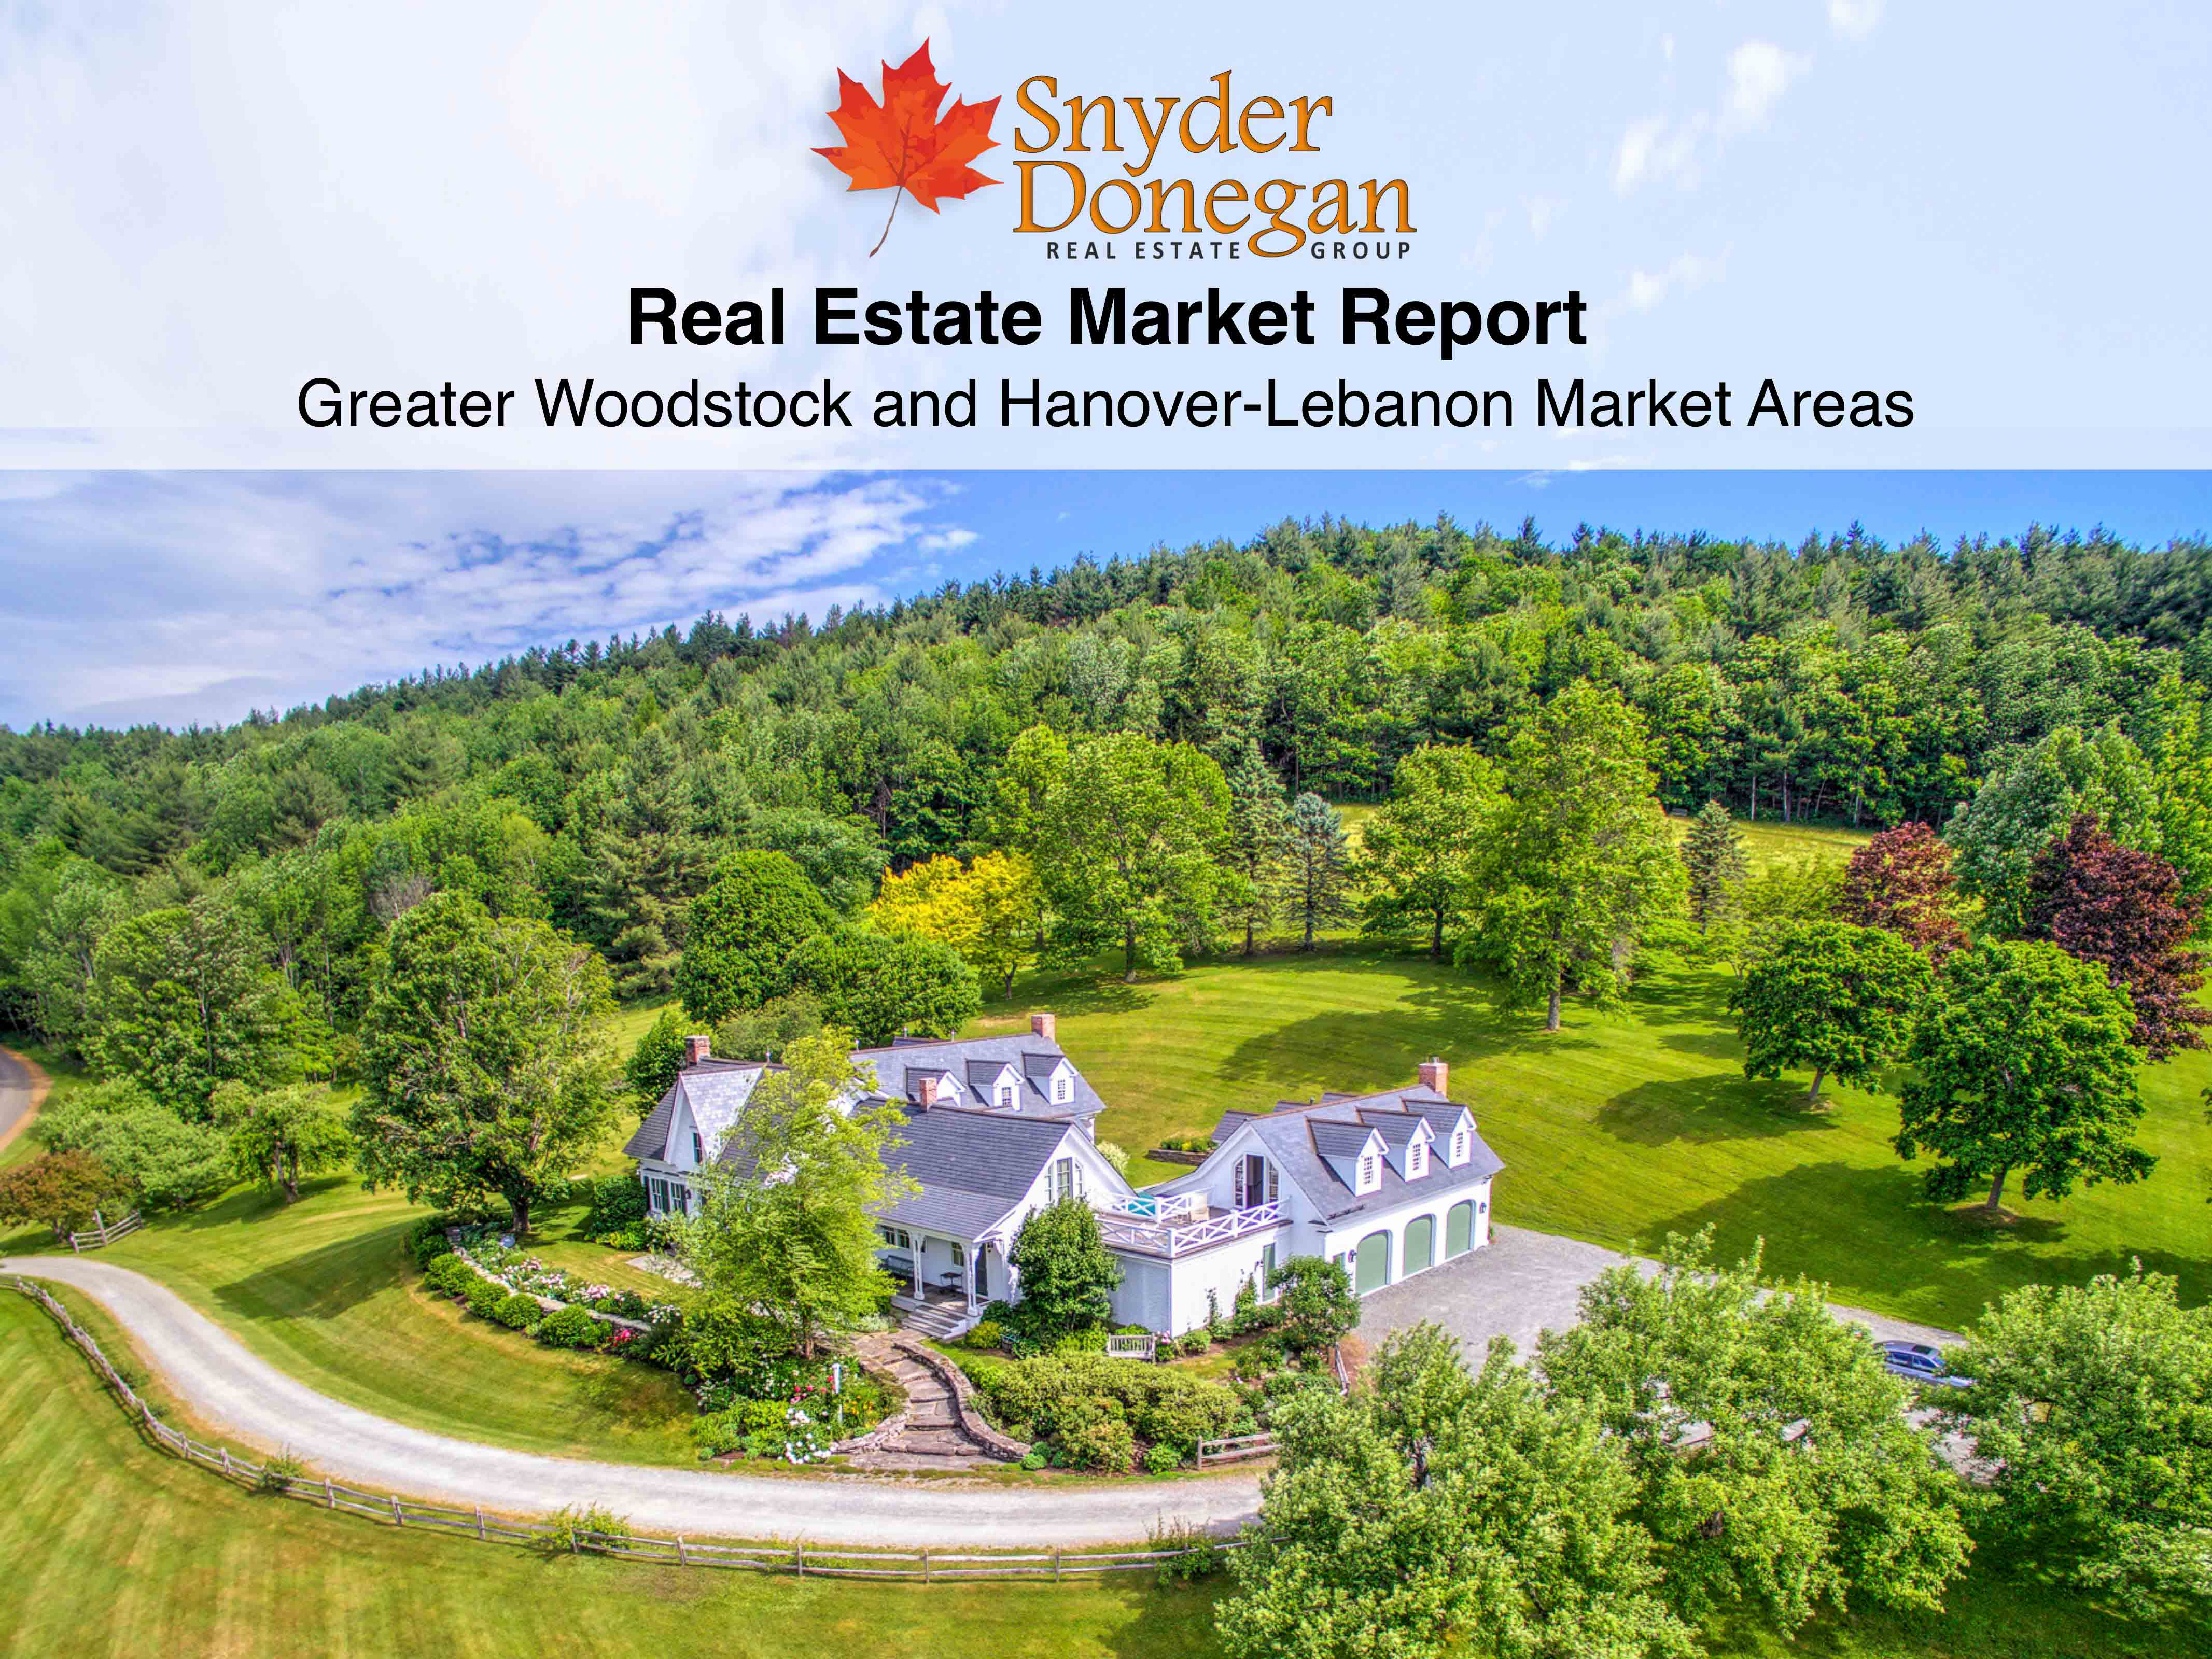 Real Estate Market Report - Greater Woodstock and Greater Hanover Lebanon Market Areas - Third Quarter, 2018